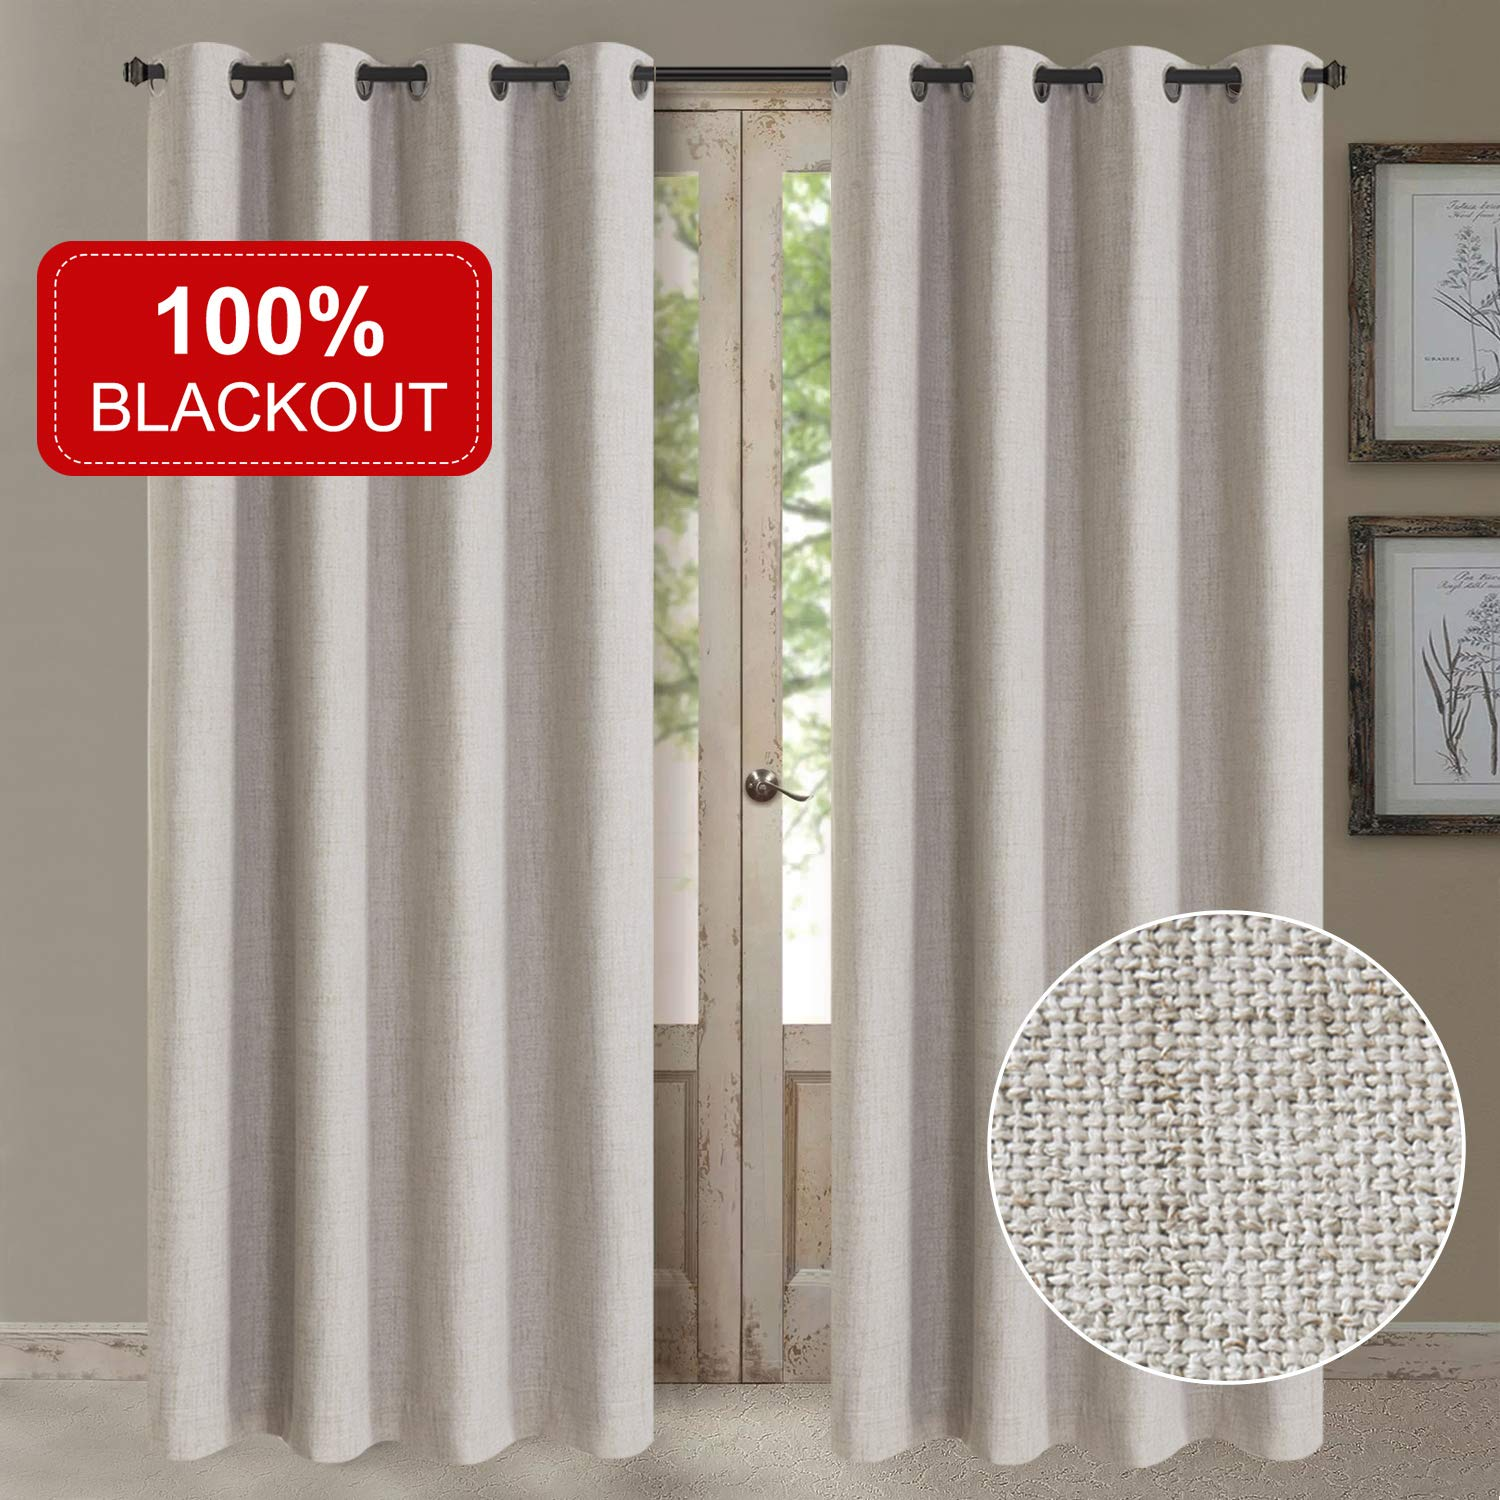 Rose Home Fashion 100% Blackout Curtains for Bedroom Linen Textured Look Drapes with Blackout Liner, Curtains for Living Room/Farmhouse, Burlap Curtains-Set of 2 Panels (50x84 Beige) by Rose Home Fashion